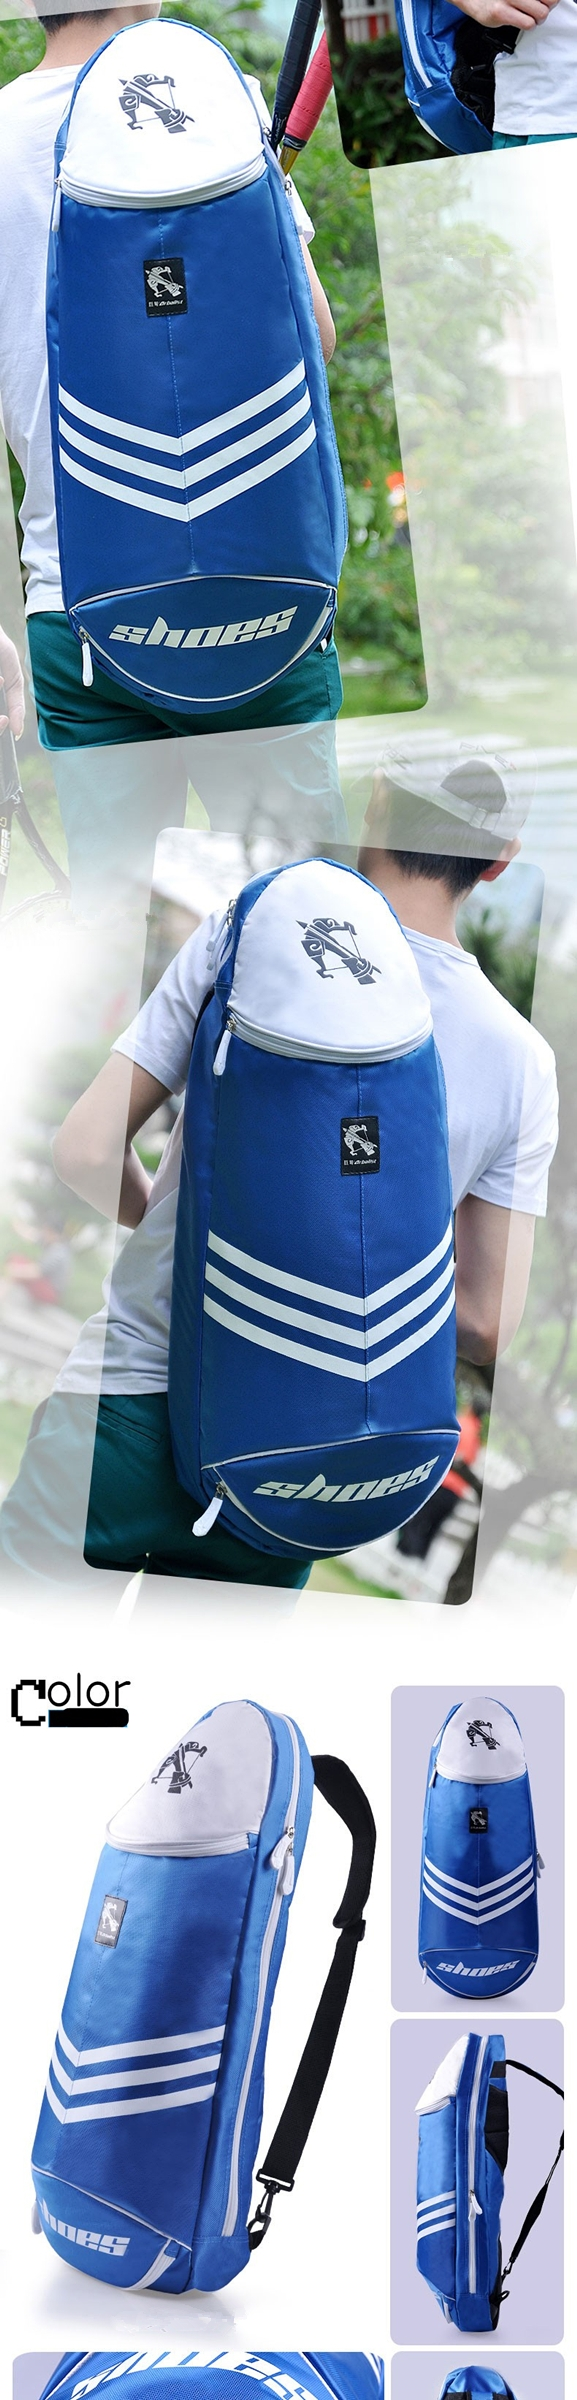 Sport Badminton Rackets Bag Single Shoulder Outdoor Multi-Purpose Light Tennis Bag